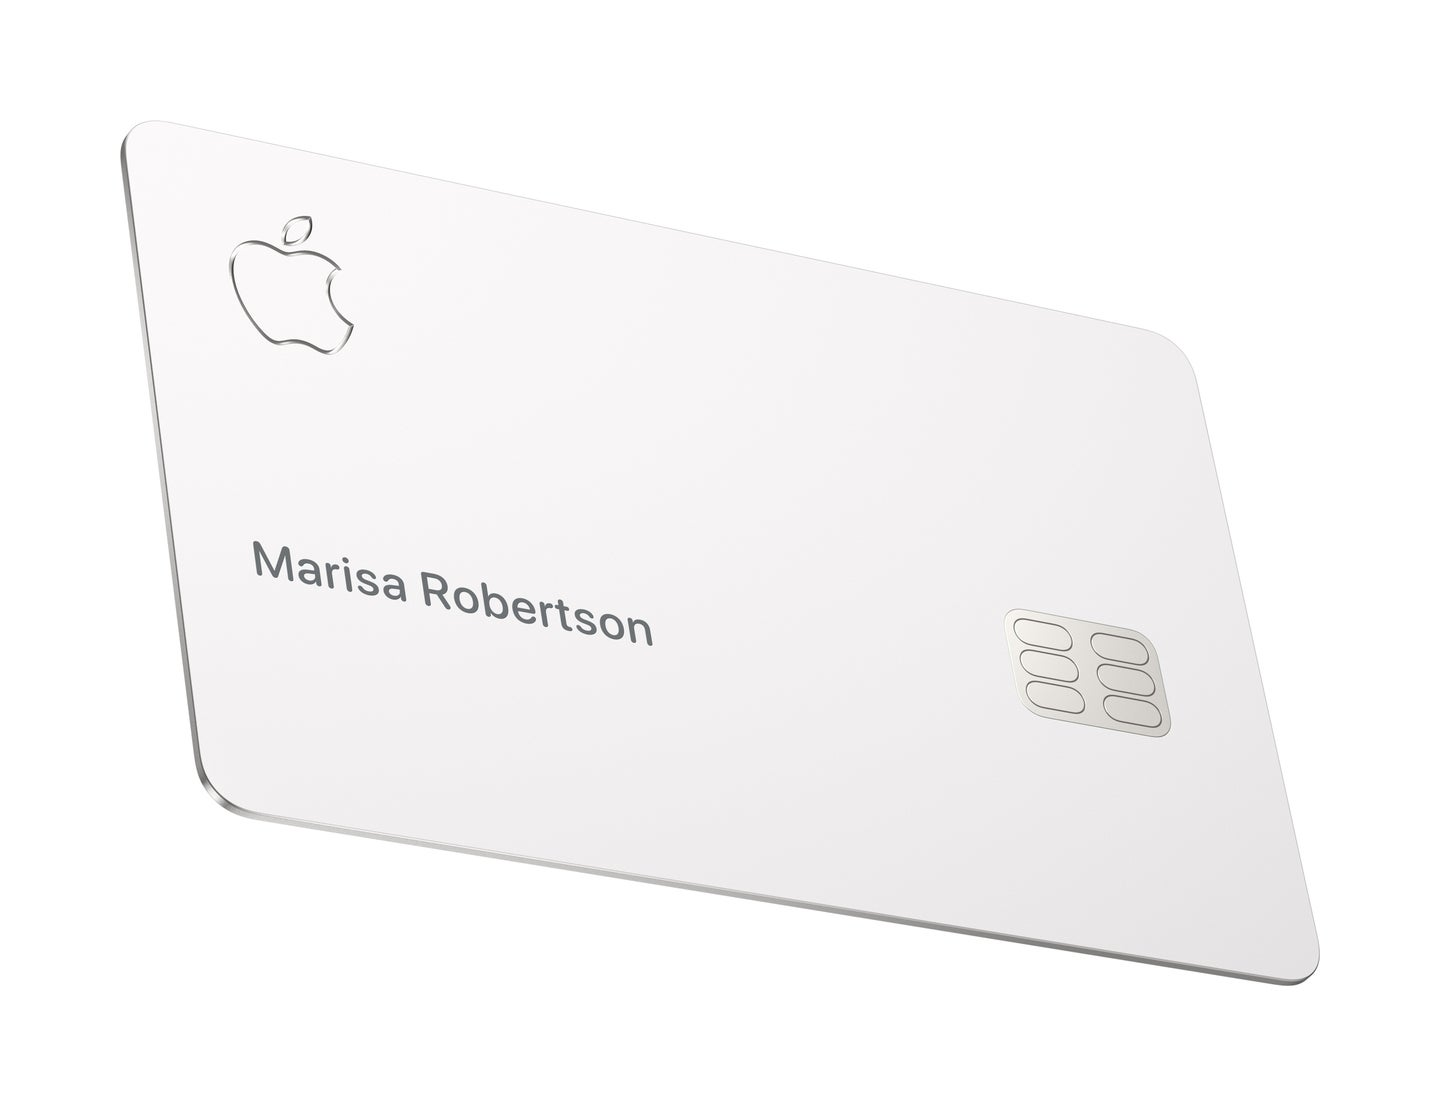 Everything you need to know about the new Apple credit card